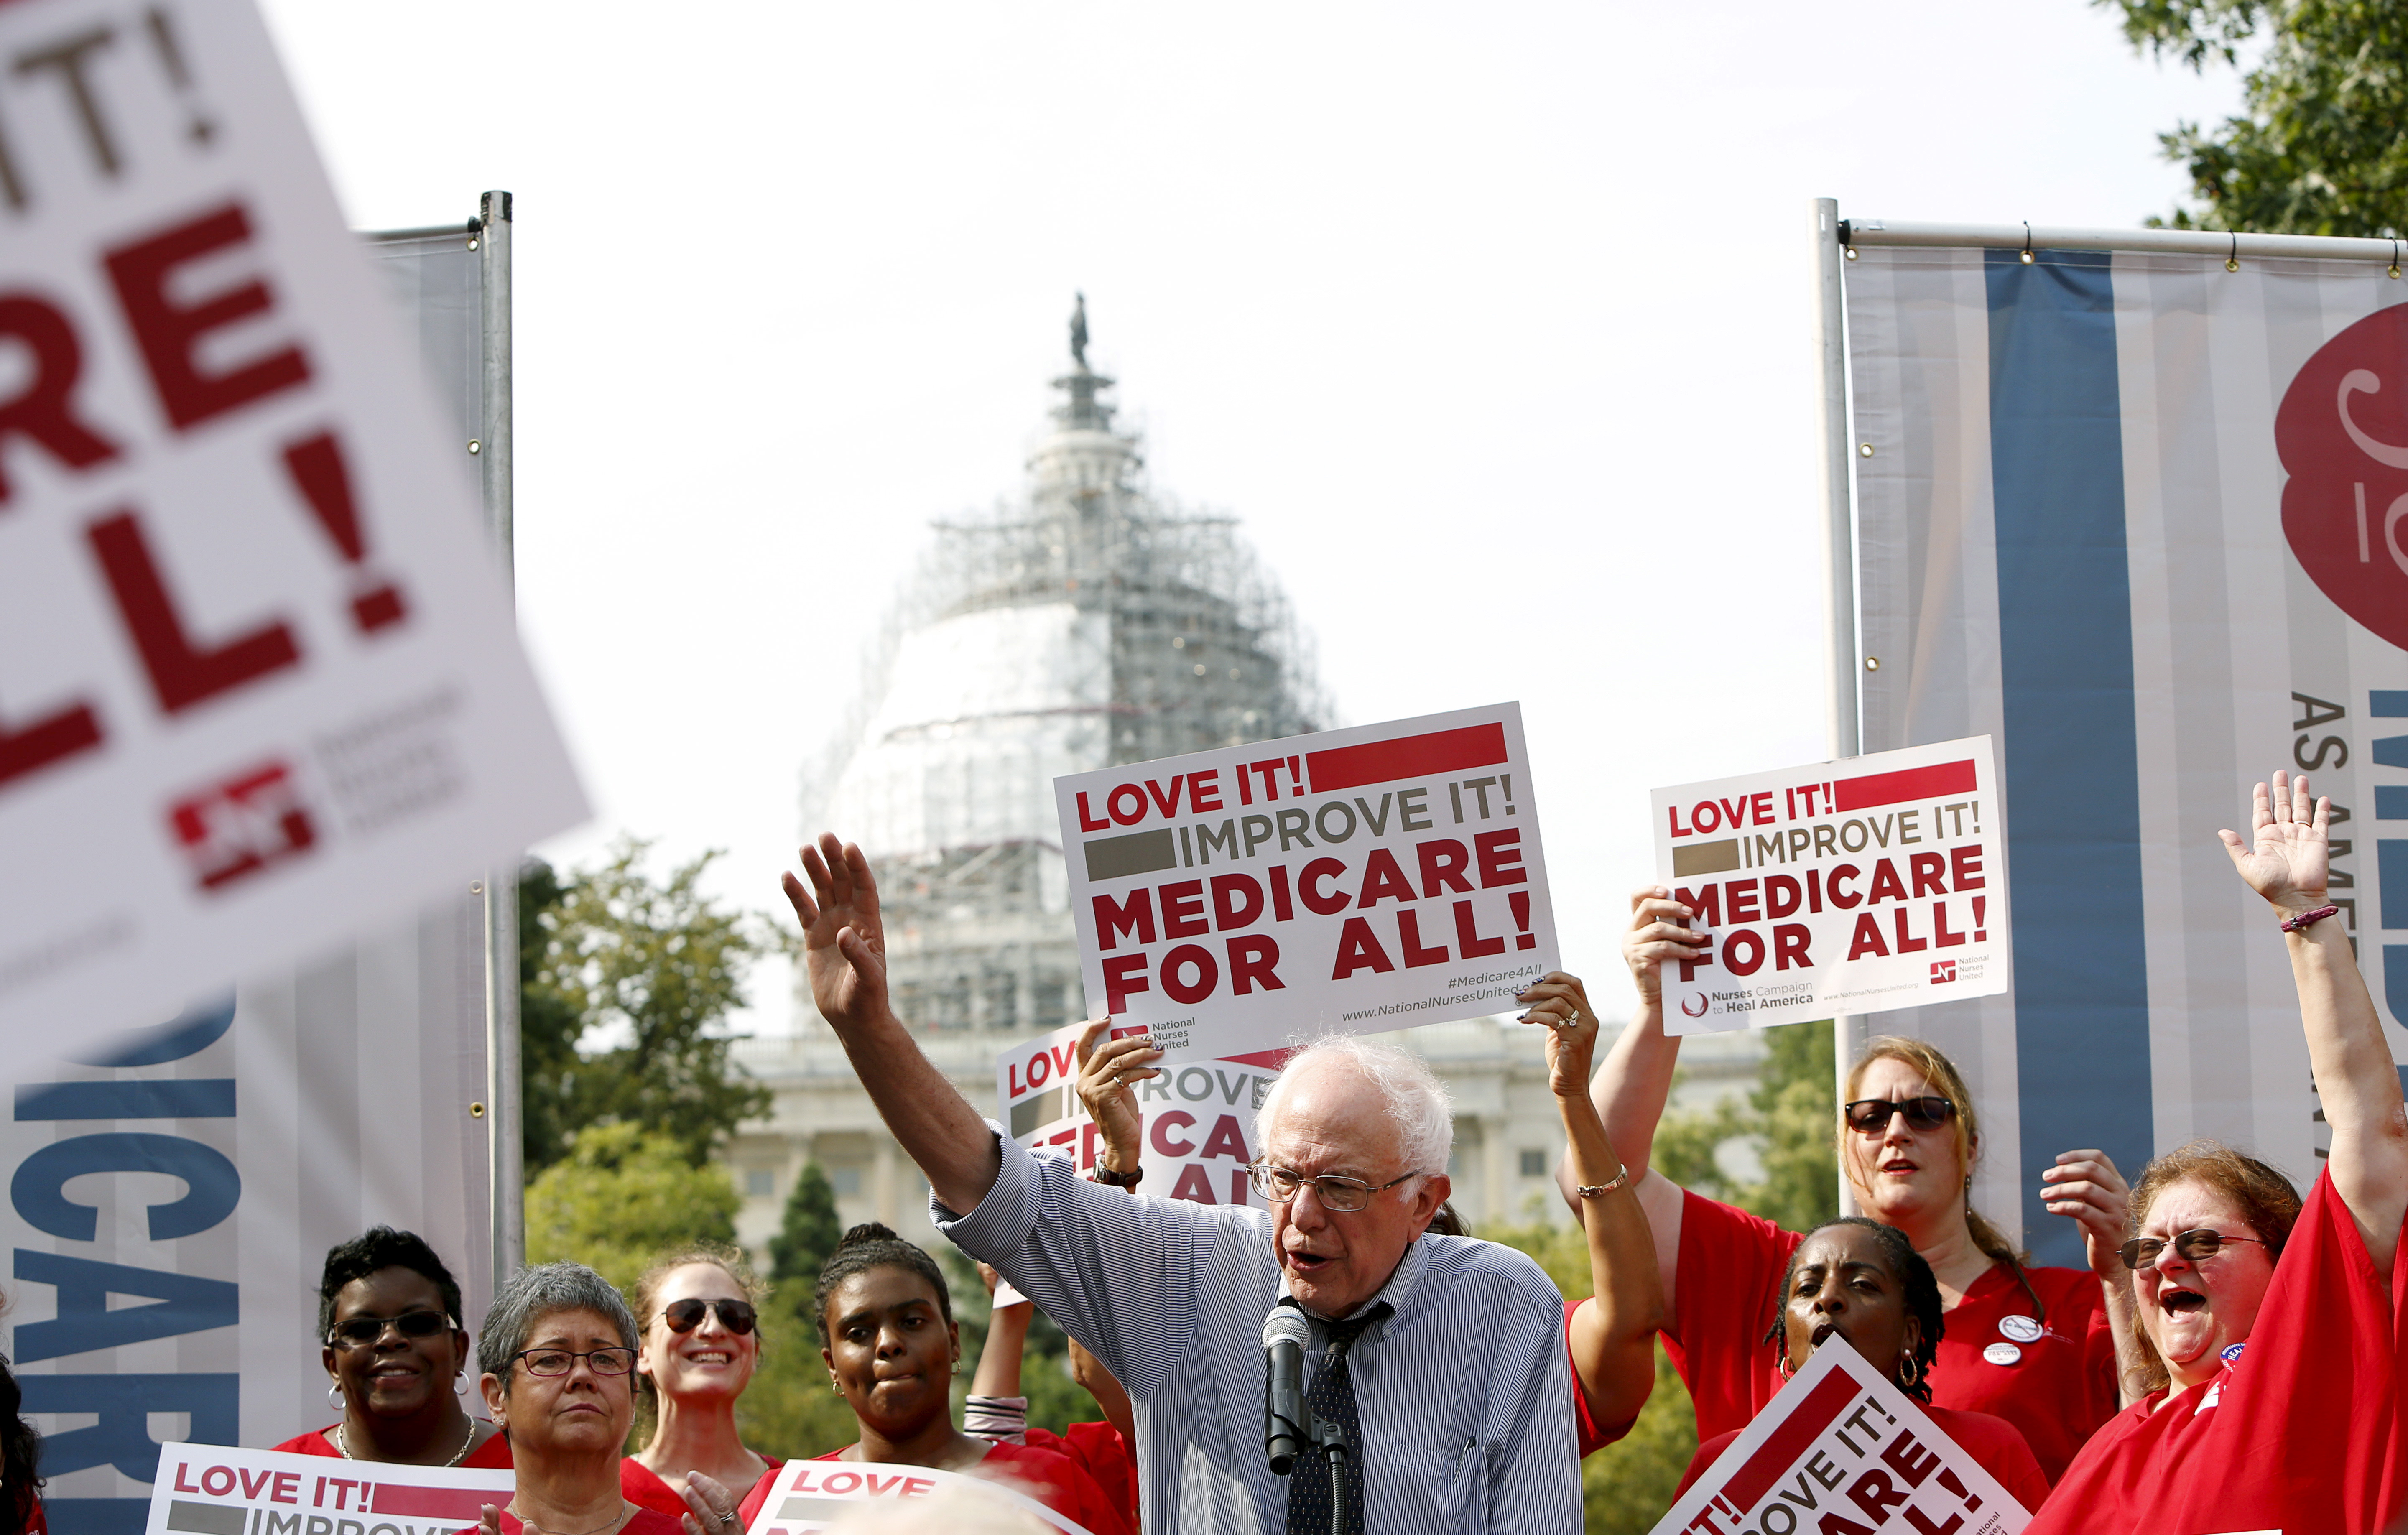 Democratic presidential candidate Bernie Sanders delivers remarks at a National Nurses United event to honor Medicare and Medicaid's 50th anniversary on Capitol Hill in Washington on July 30, 2015.